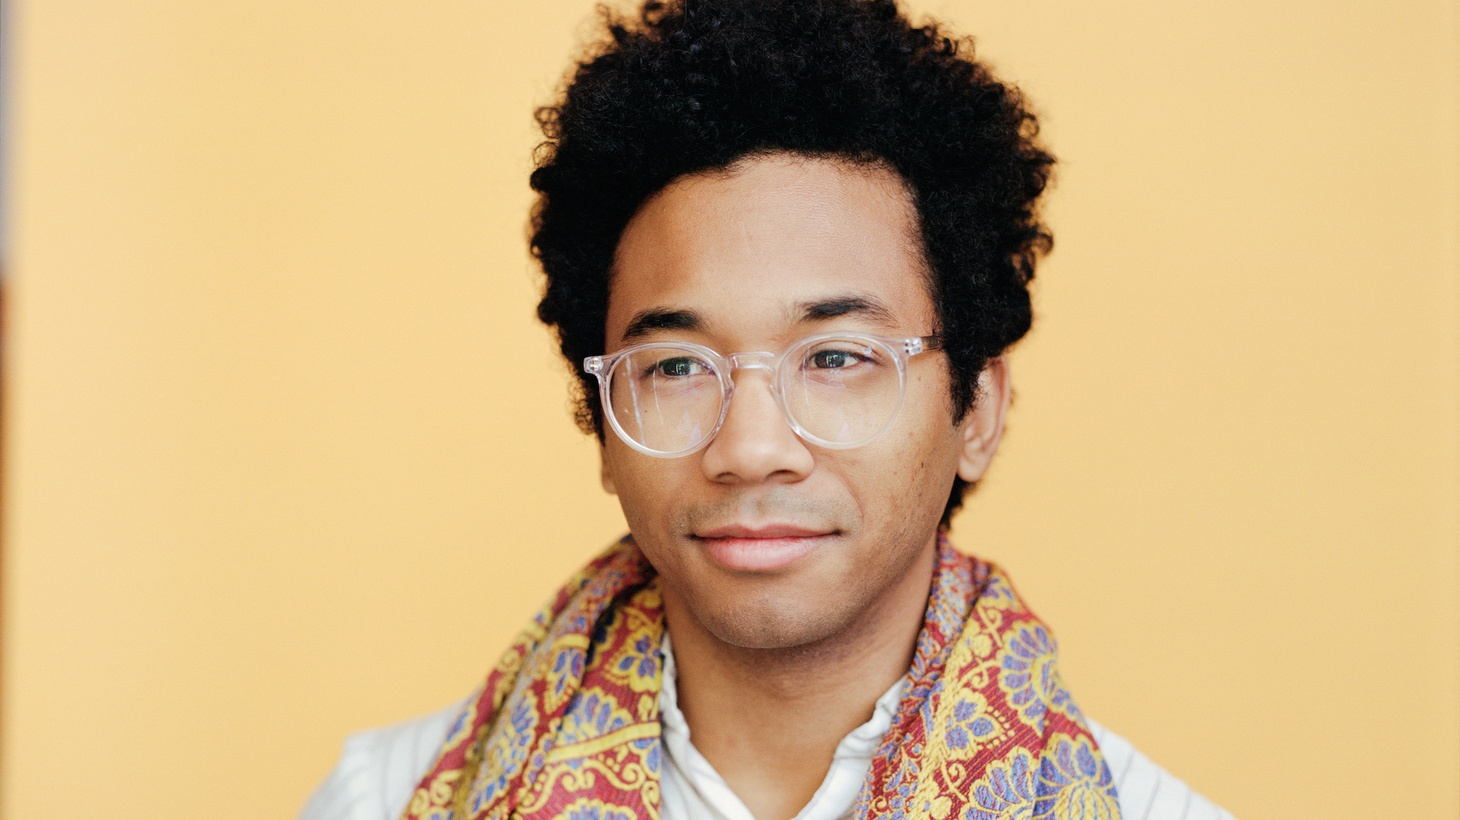 Chazwick Bundick returns to his Toro Y Moi moniker for his latest release, a psychedelic rock record that expands upon his trademark dance and indie pop sounds.